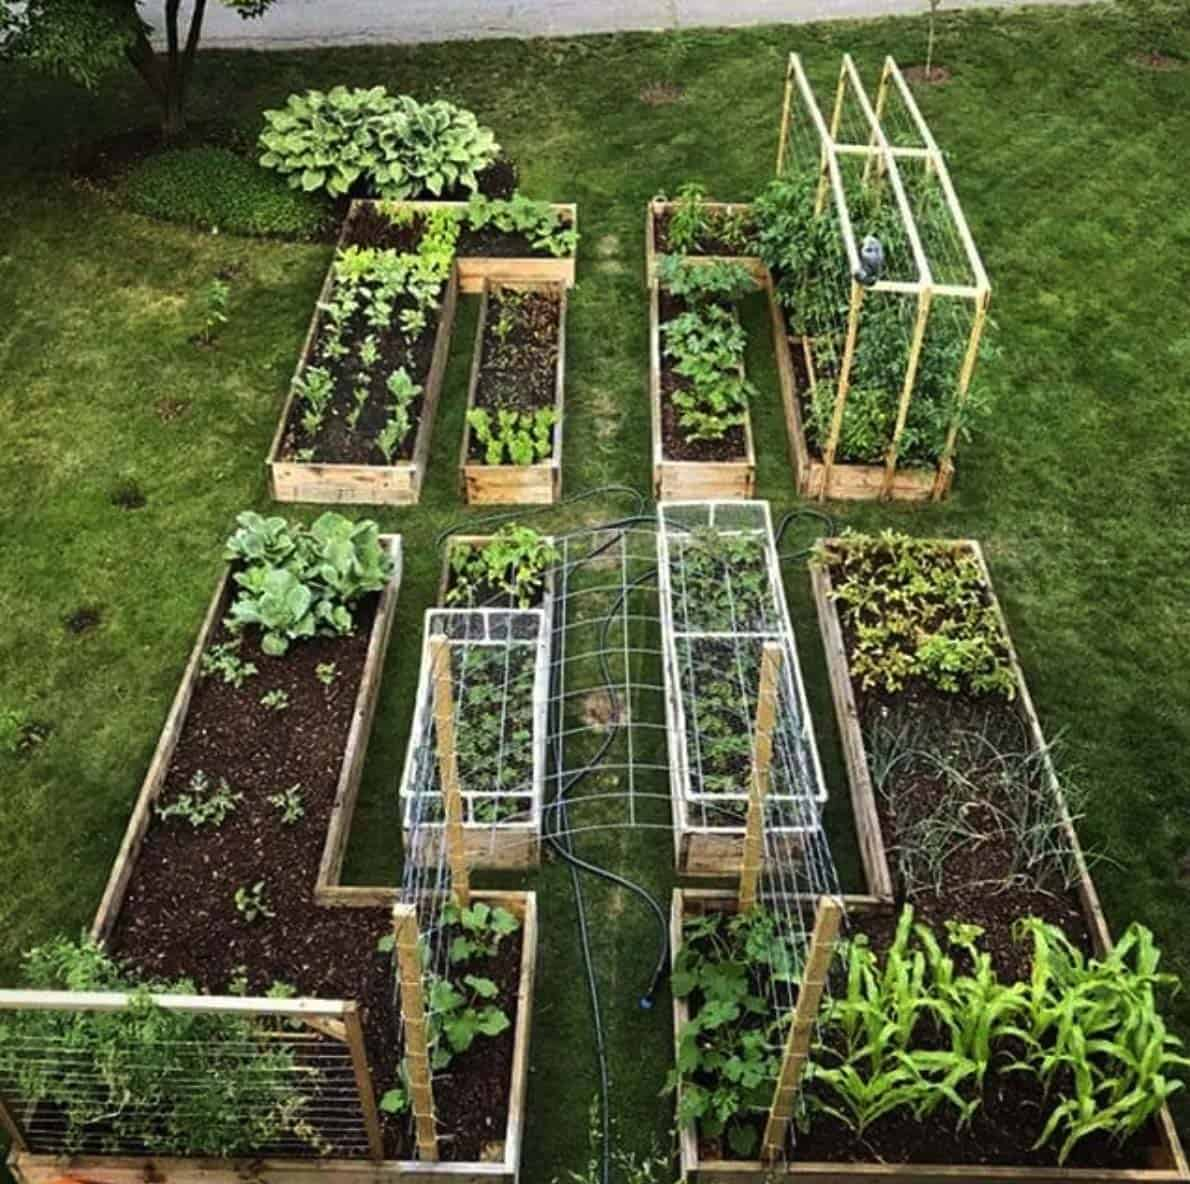 Home Garden Design Ideas India: 30 Amazing Ideas For Growing A Vegetable Garden In Your